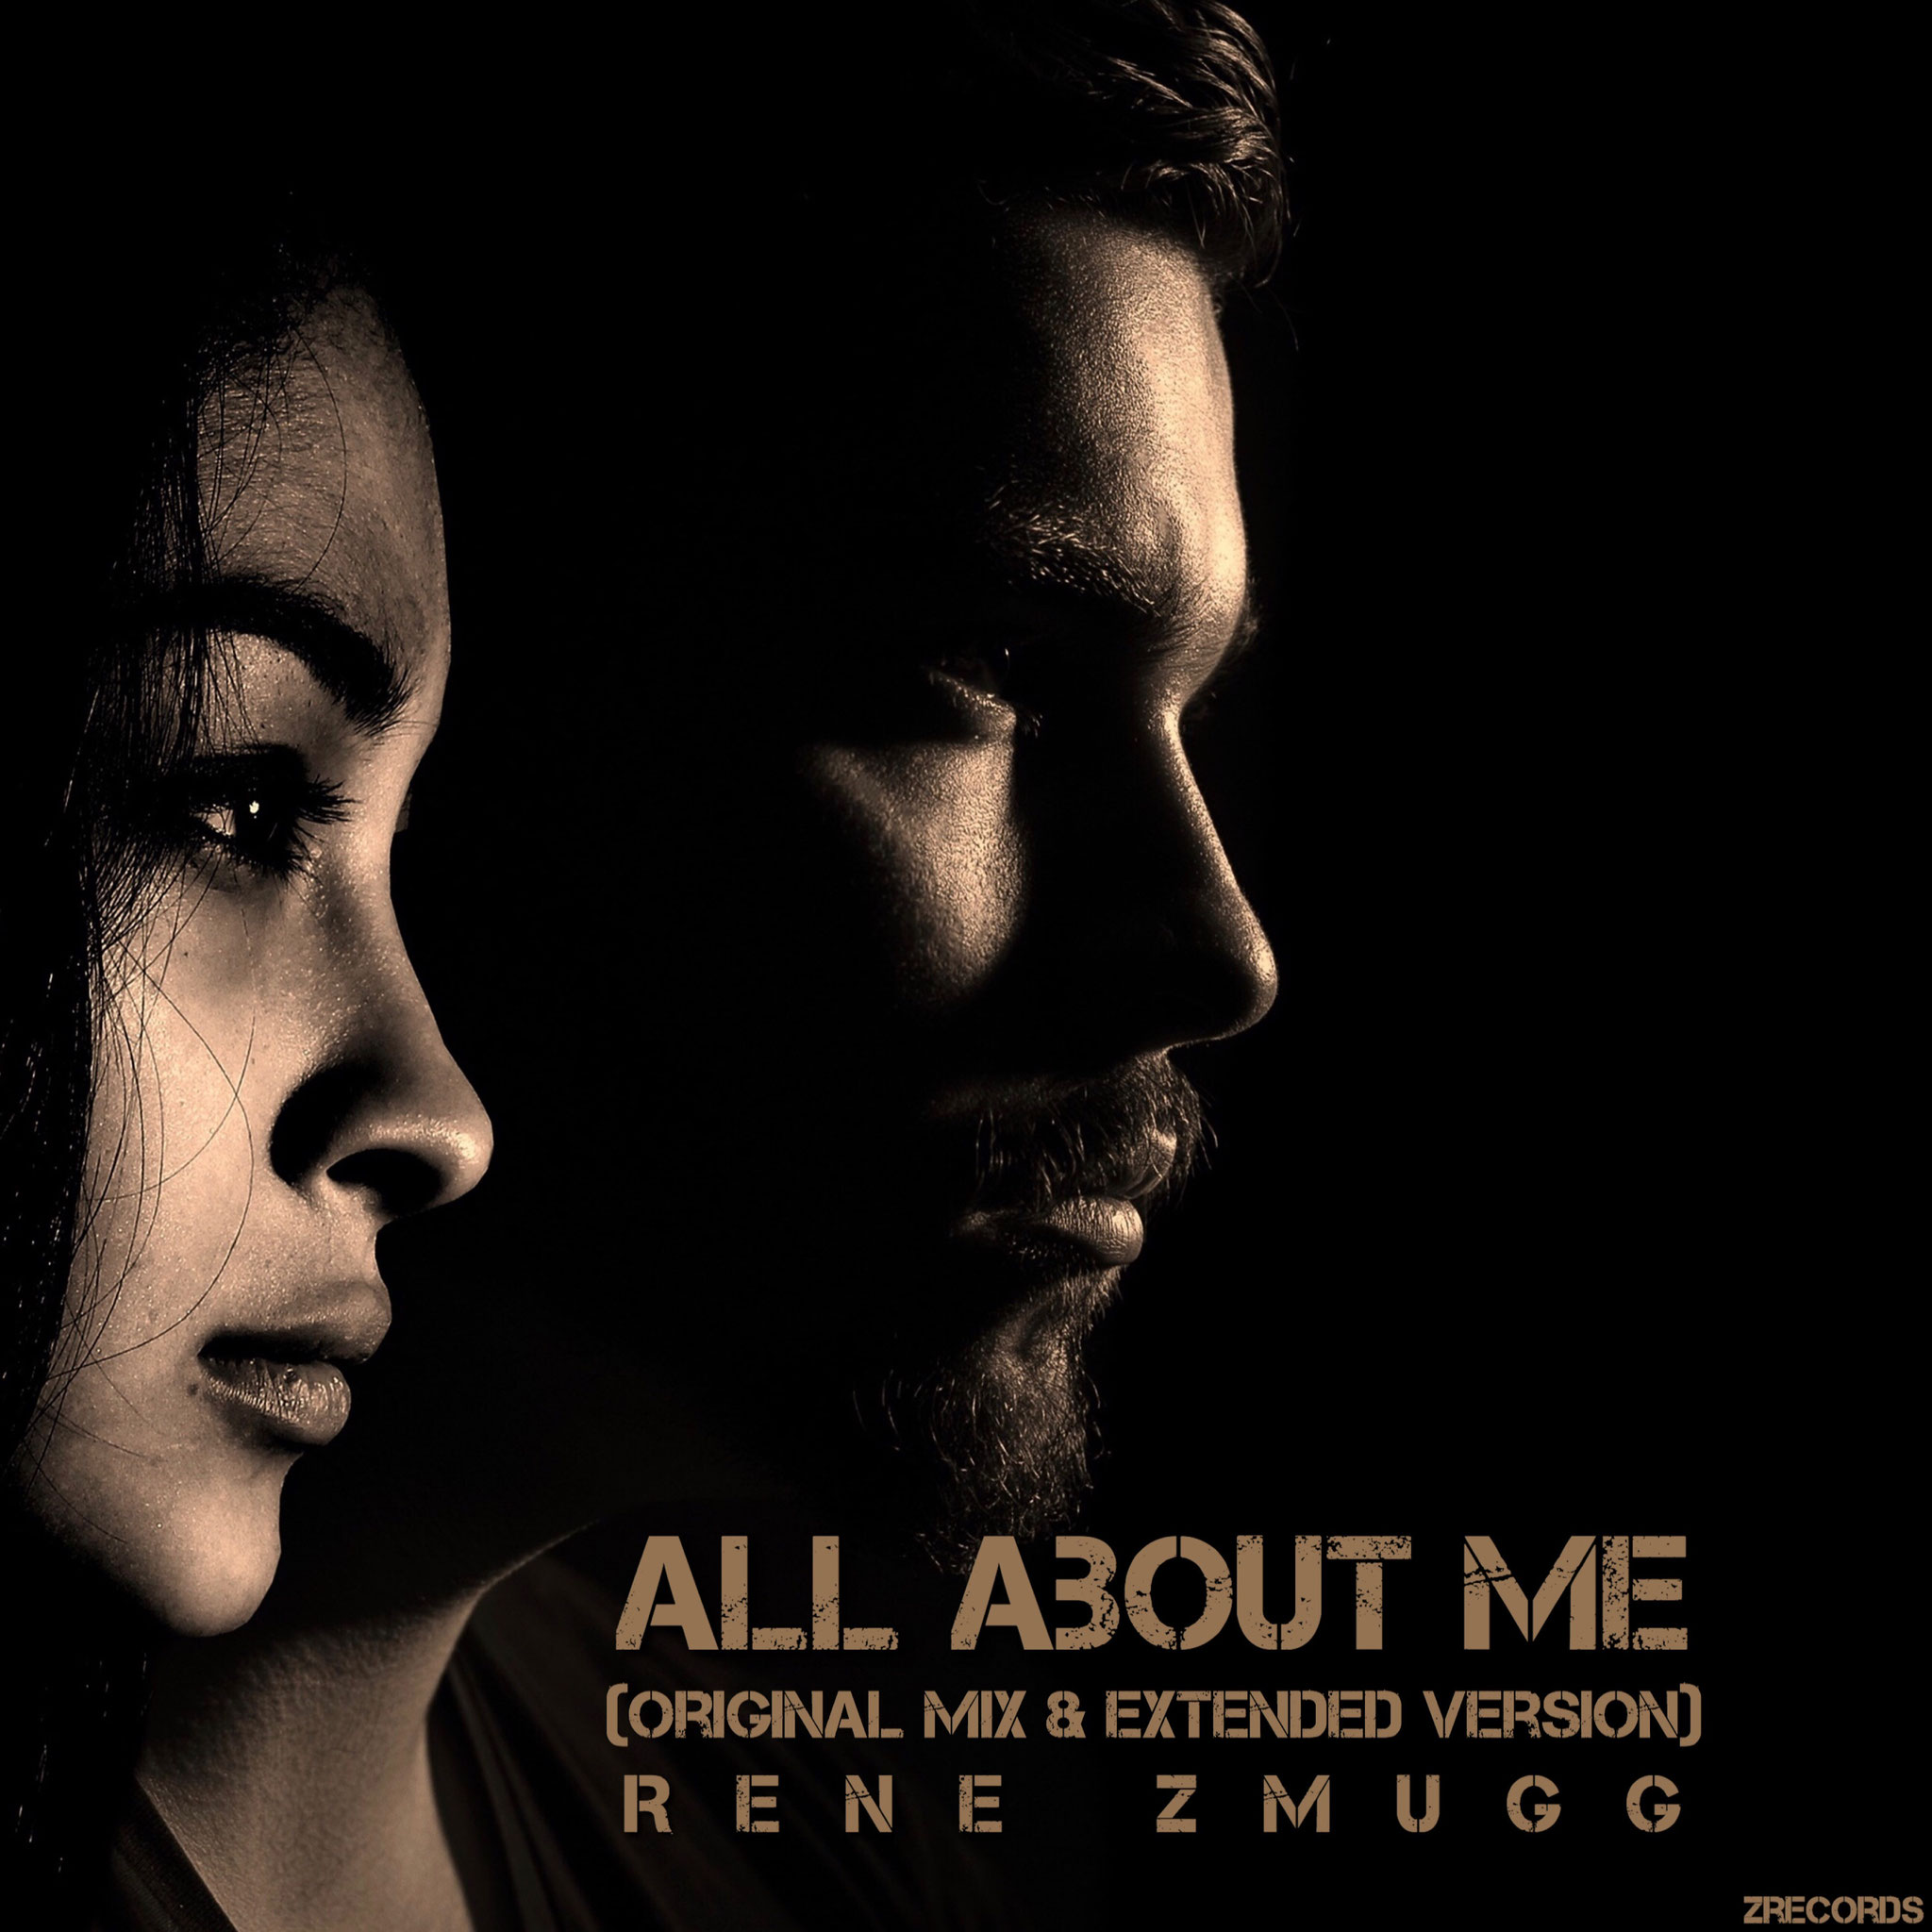 Single - All About Me